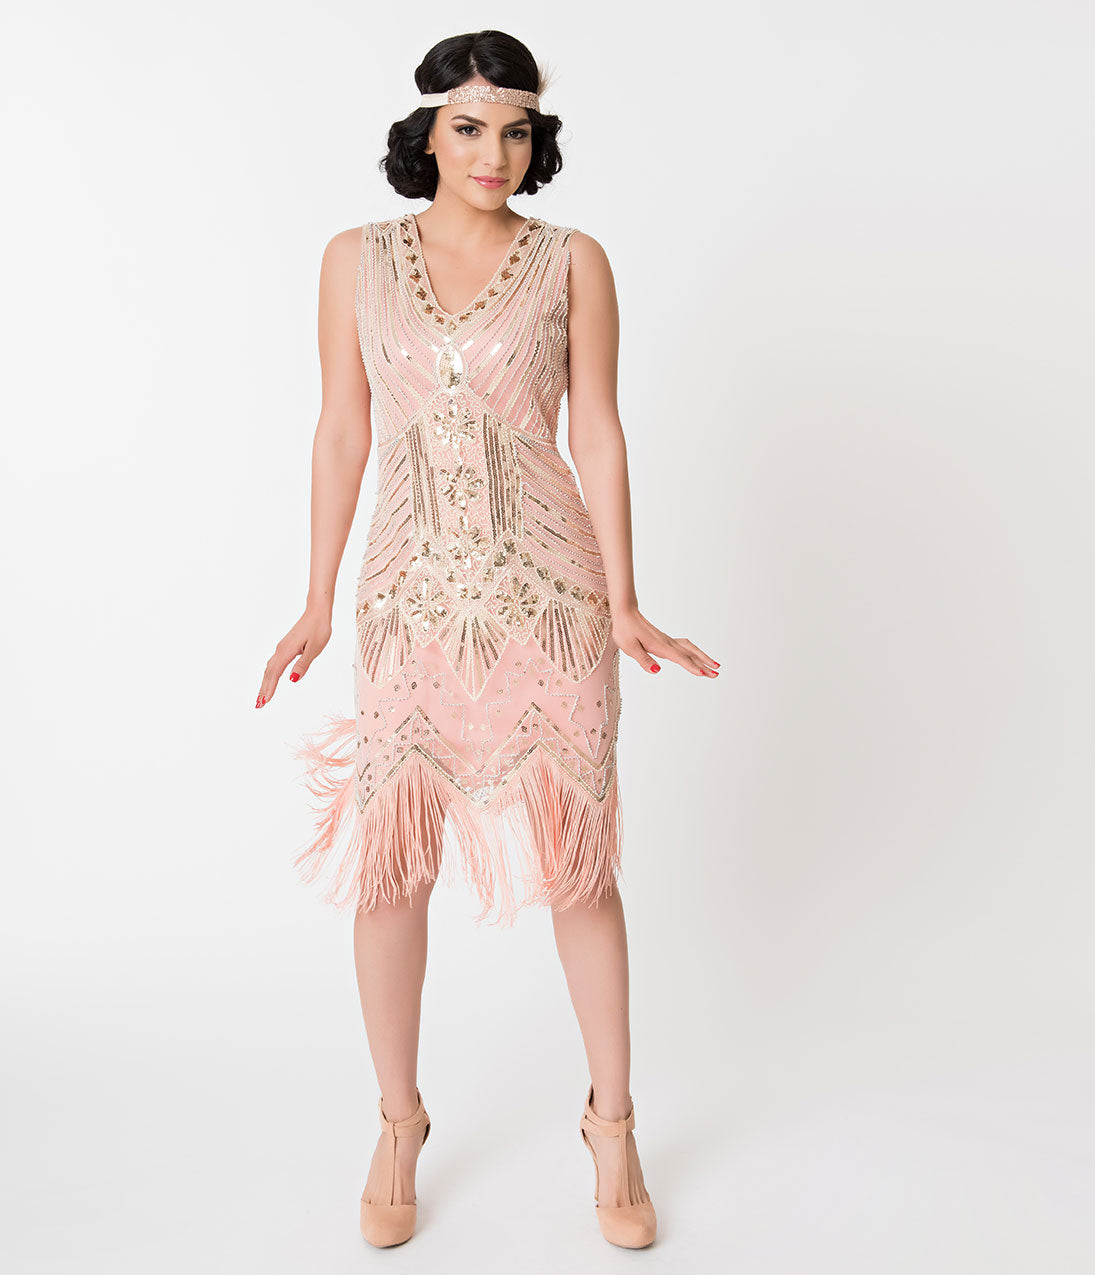 1920s Style Dresses, Flapper Dresses Unique Vintage 1920S Deco Peach  Gold Veronique Fringe Flapper Dress $98.00 AT vintagedancer.com